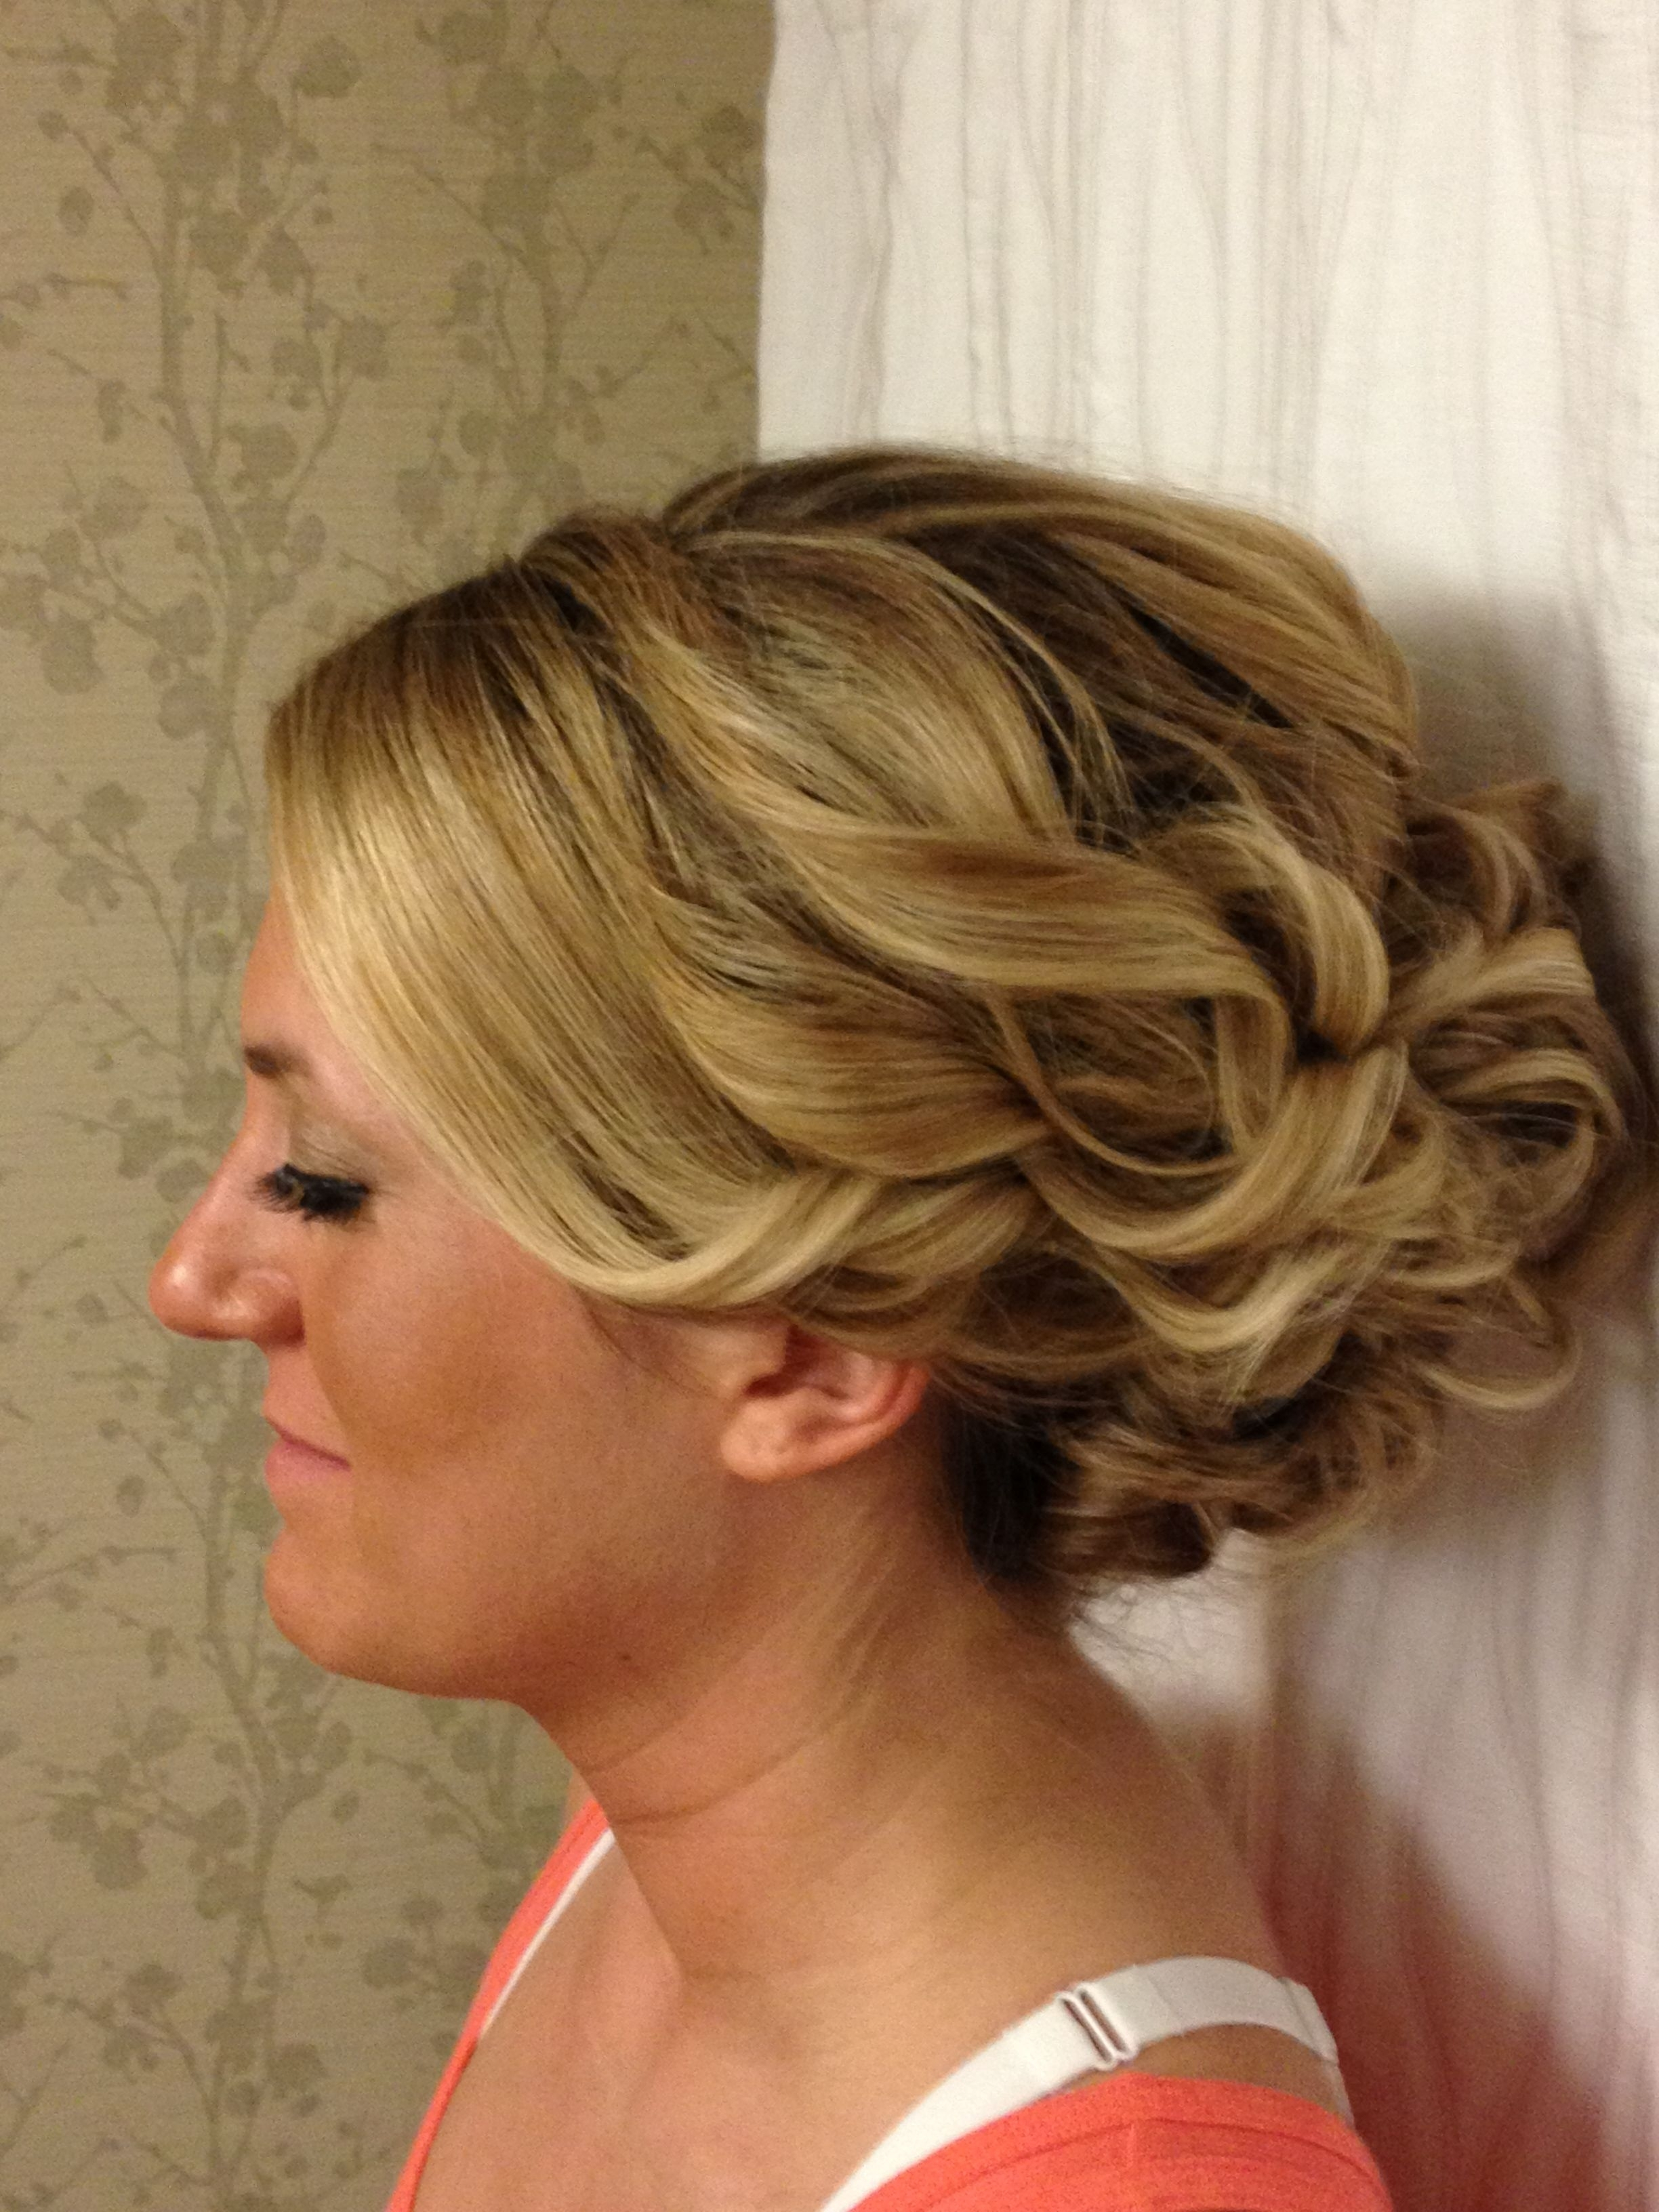 Updo For Long, Thick Hair For Homecoming Or A Wedding | Charisma Throughout Hair Updo Hairstyles For Thick Hair (View 2 of 15)